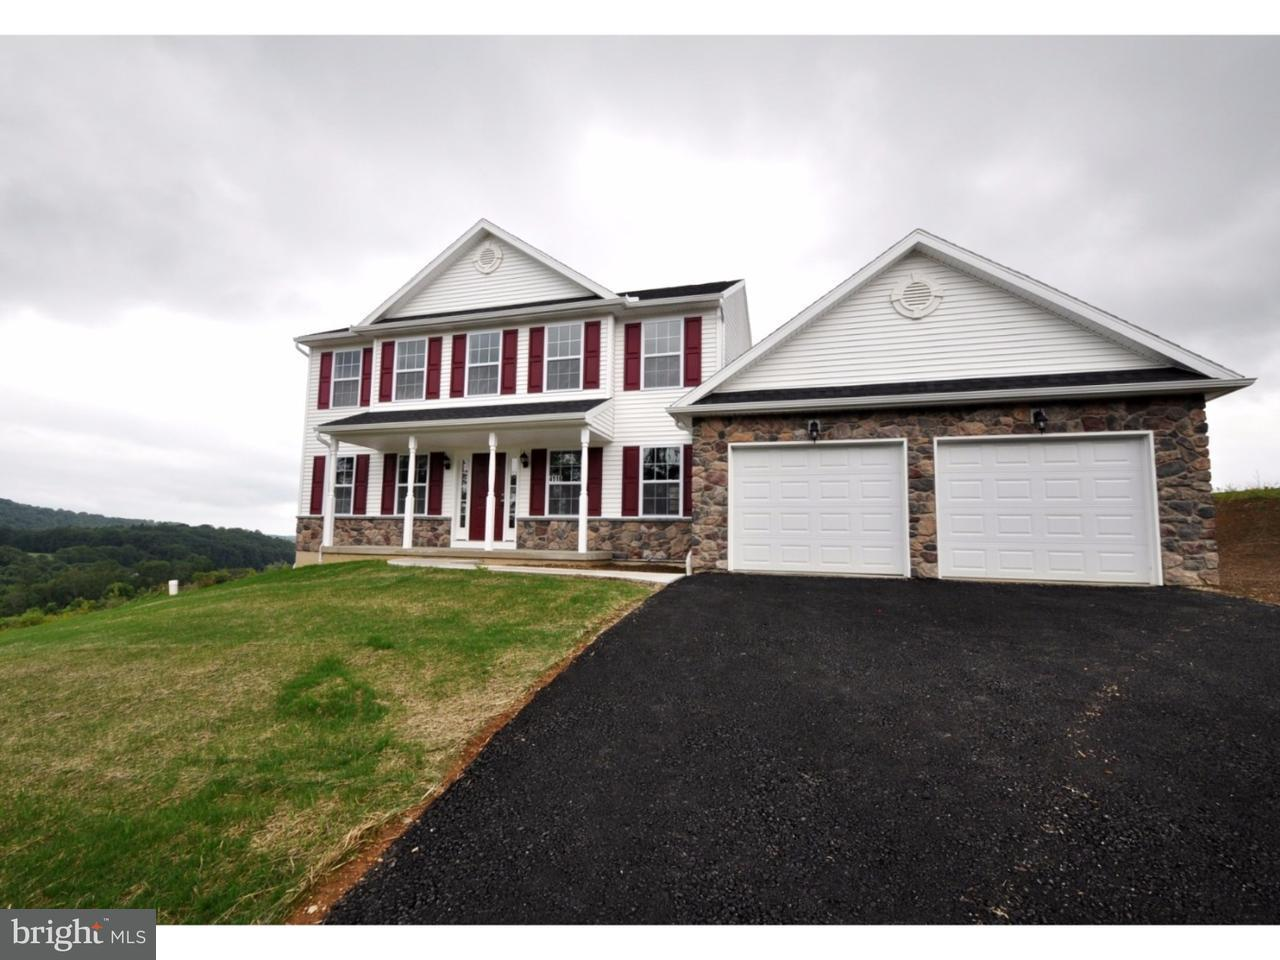 Casa Unifamiliar por un Venta en 4916 COATBRIDGE Lane Walnutport, Pennsylvania 18088 Estados Unidos